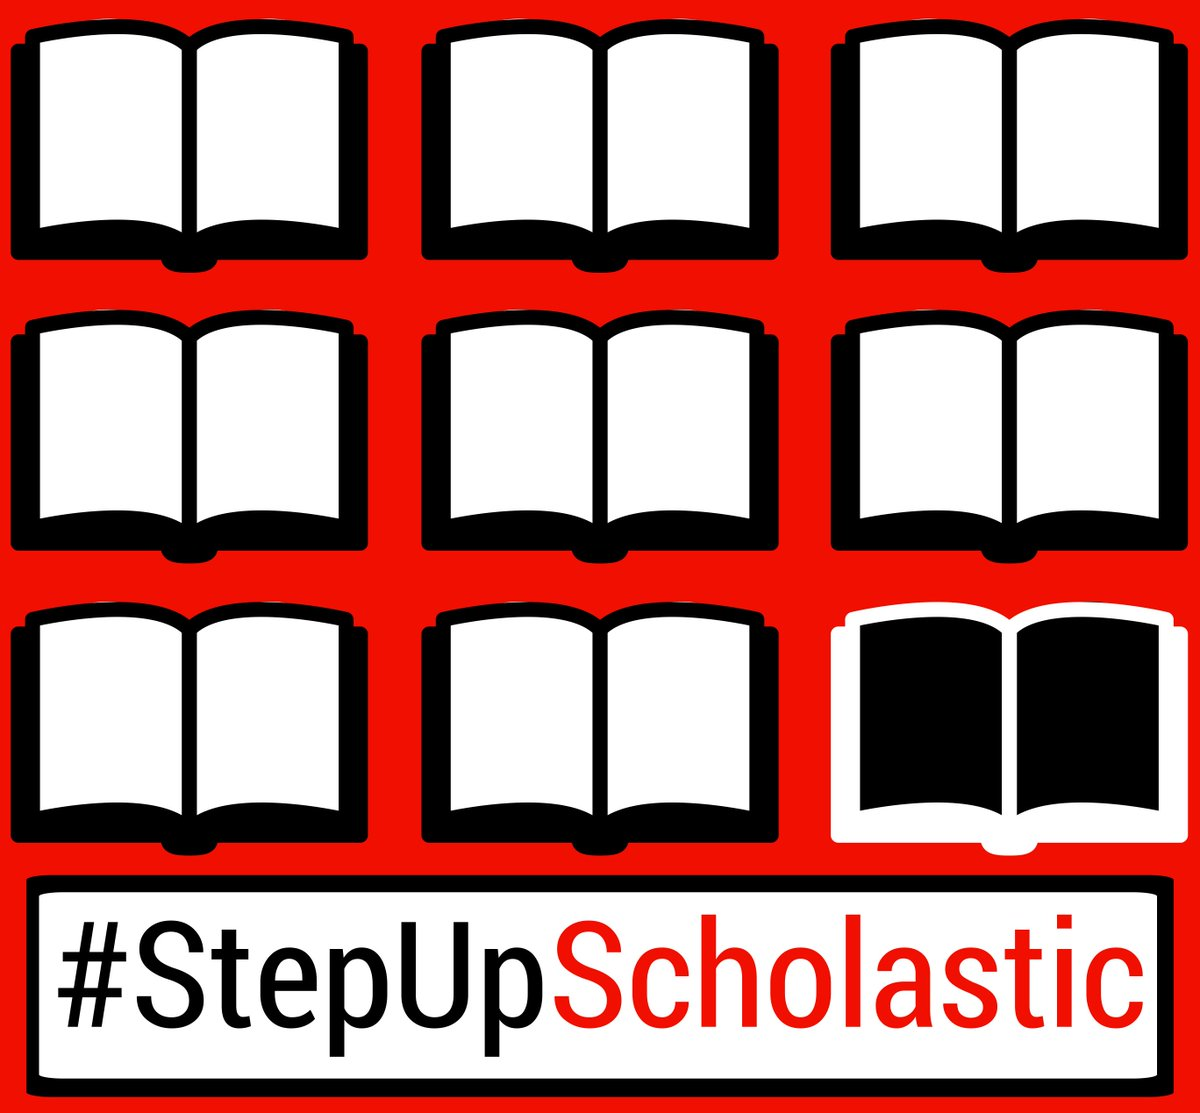 Check out details about the #StepUpScholastic Campaign here: https://t.co/ul7CeXIdvr https://t.co/c9PY0ILrTW